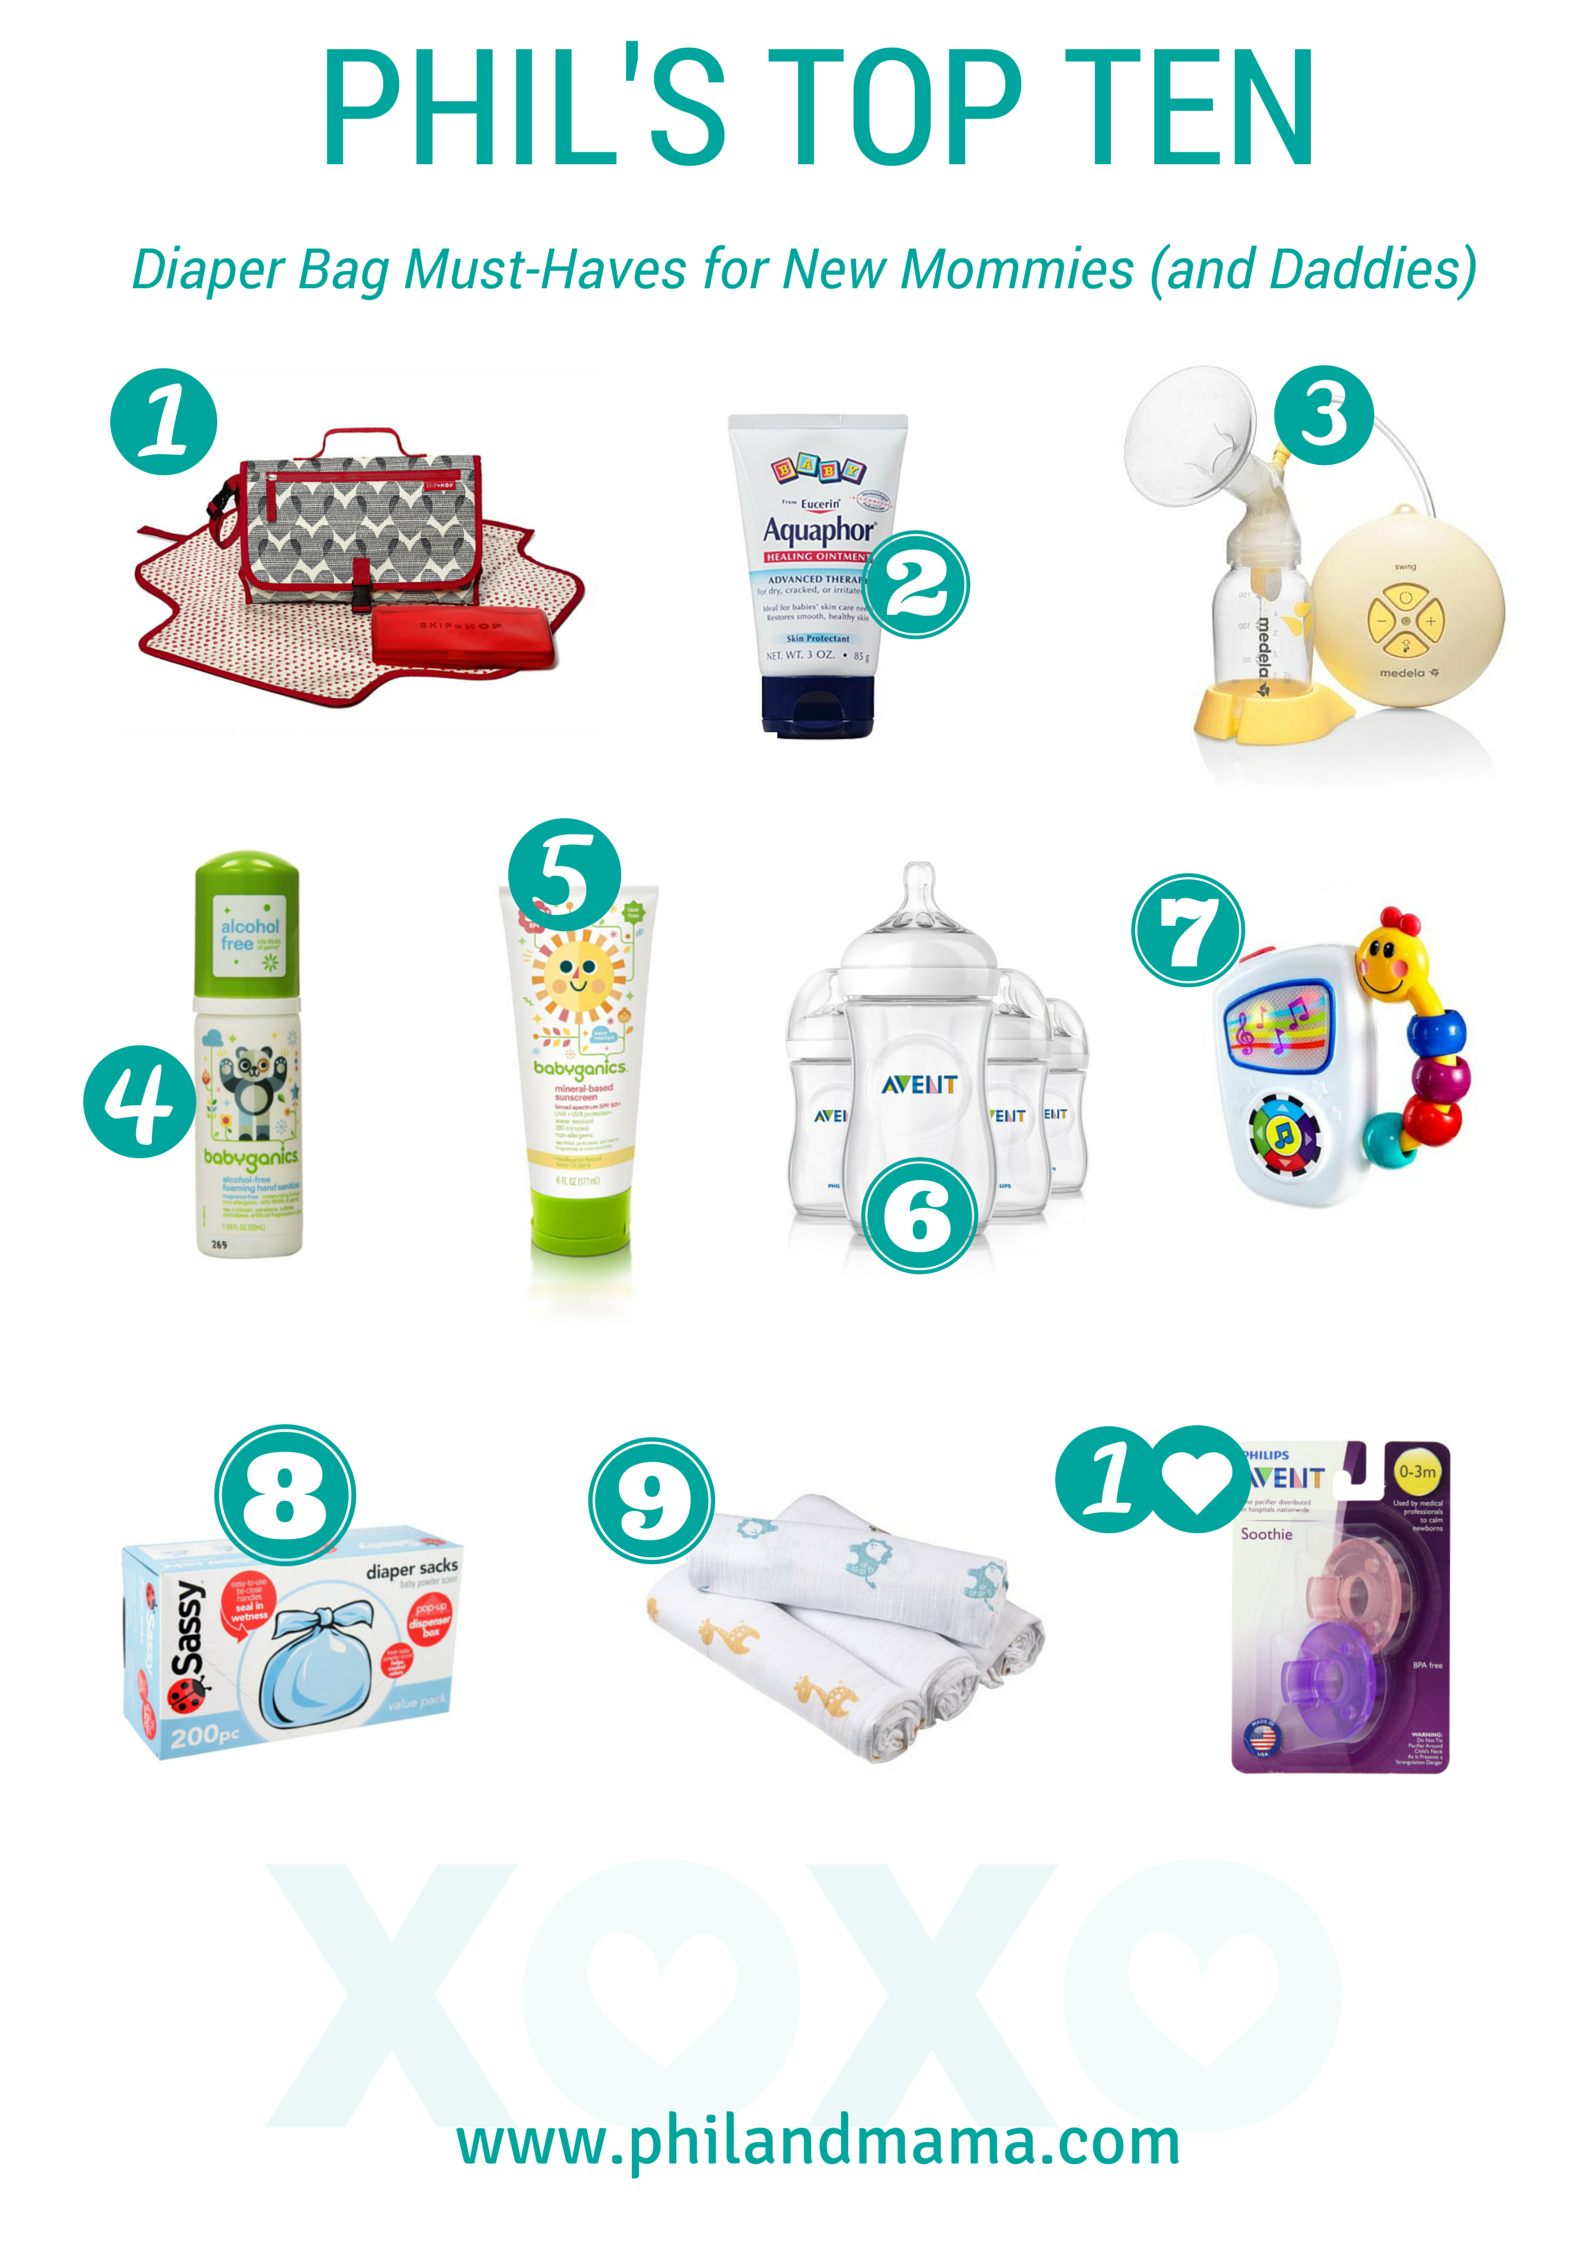 Top Ten Diaper Bag Must-Haves and Stuffer Checklist for new mommies and daddies